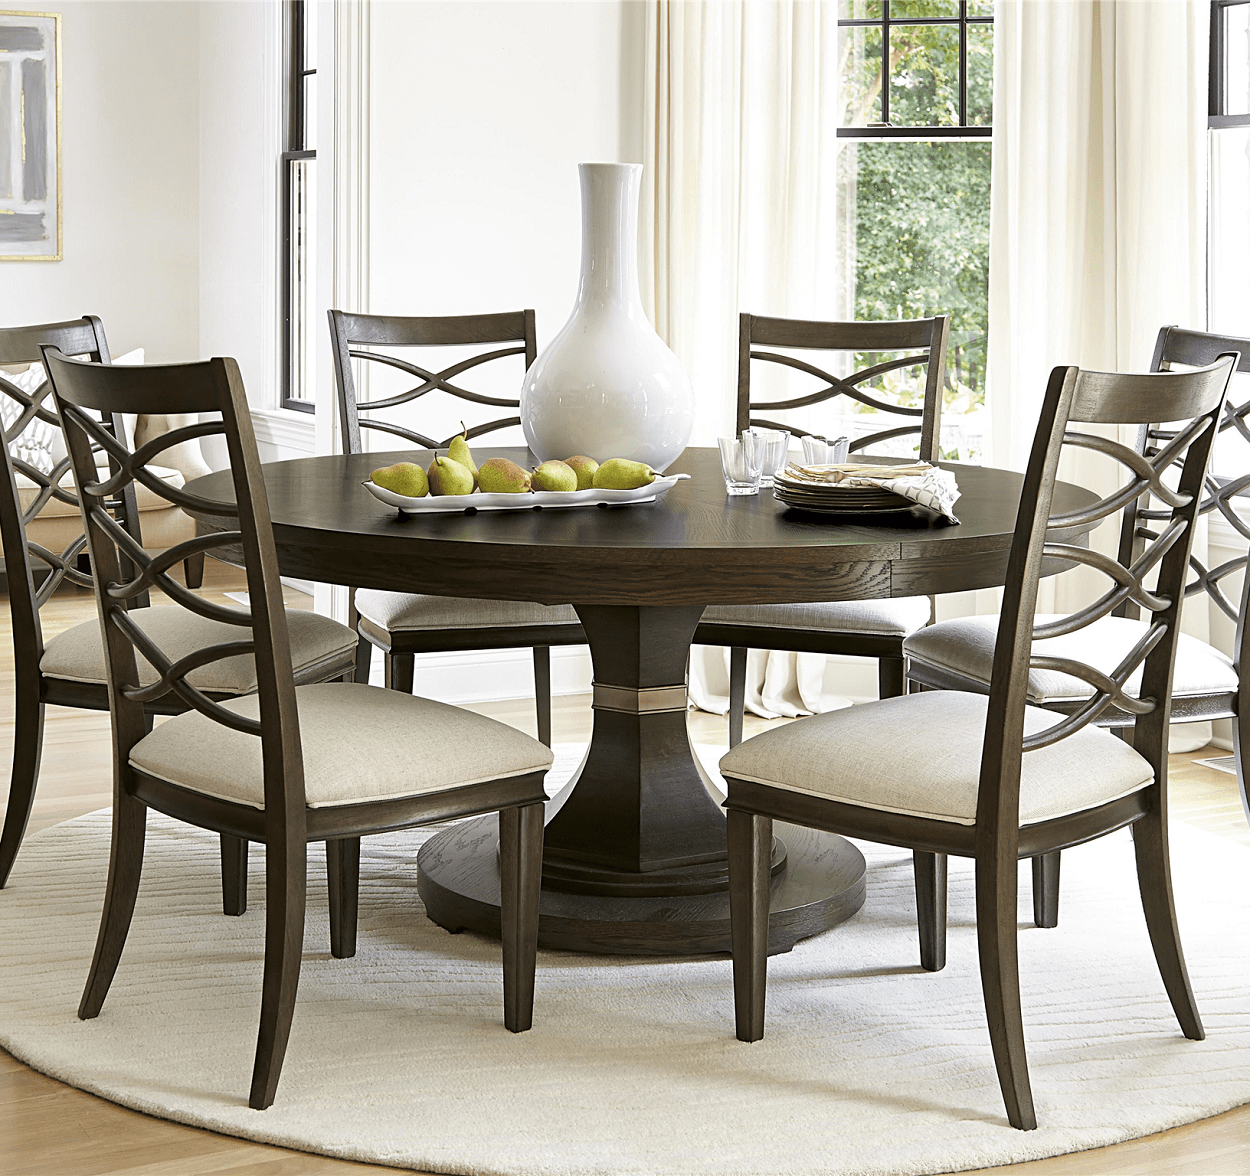 Expandable White Dining Table California Rustic Oak Expandable Round Dining Table